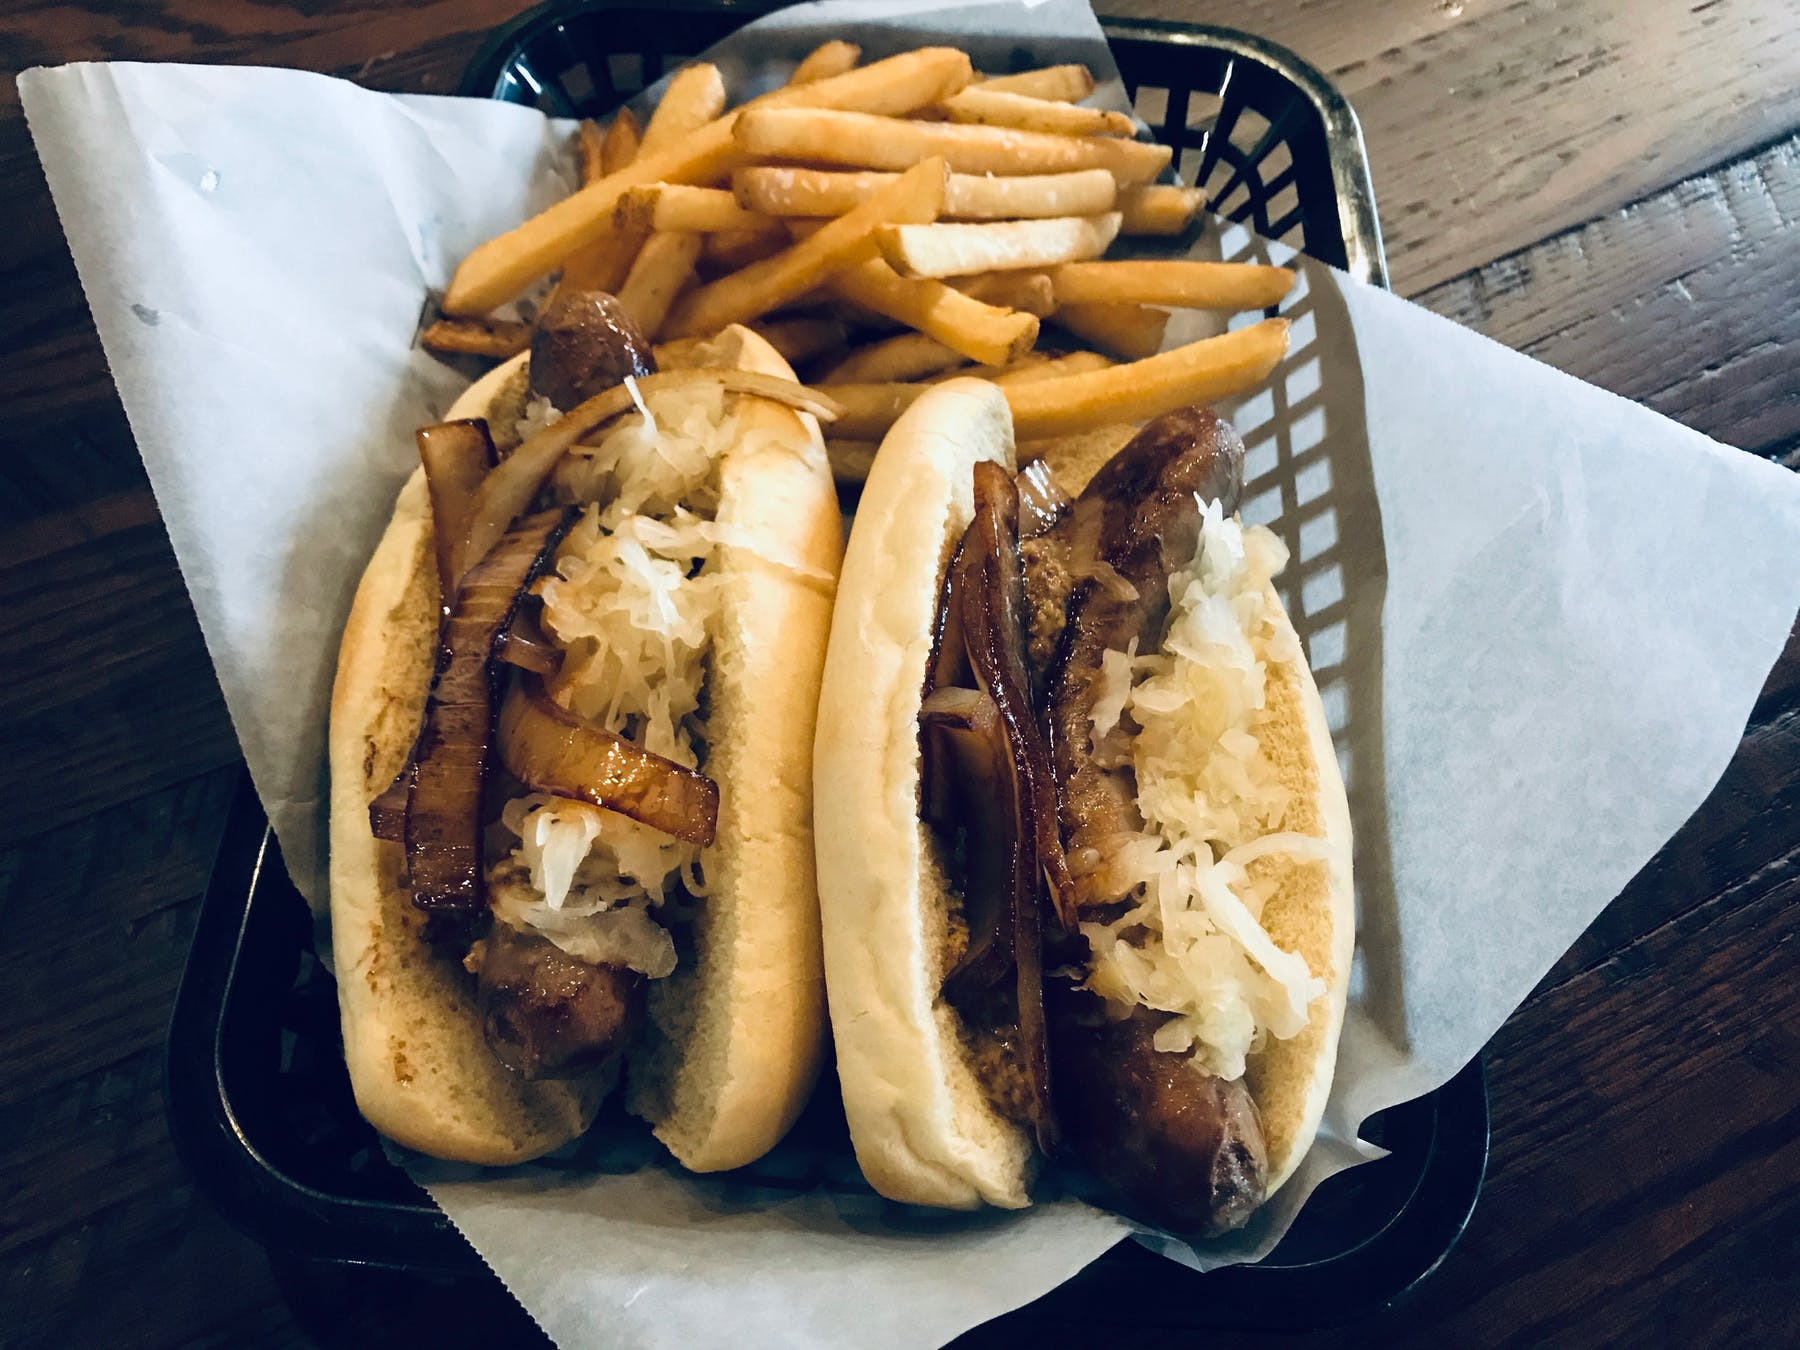 a basket of fries and a hot dog on a bun